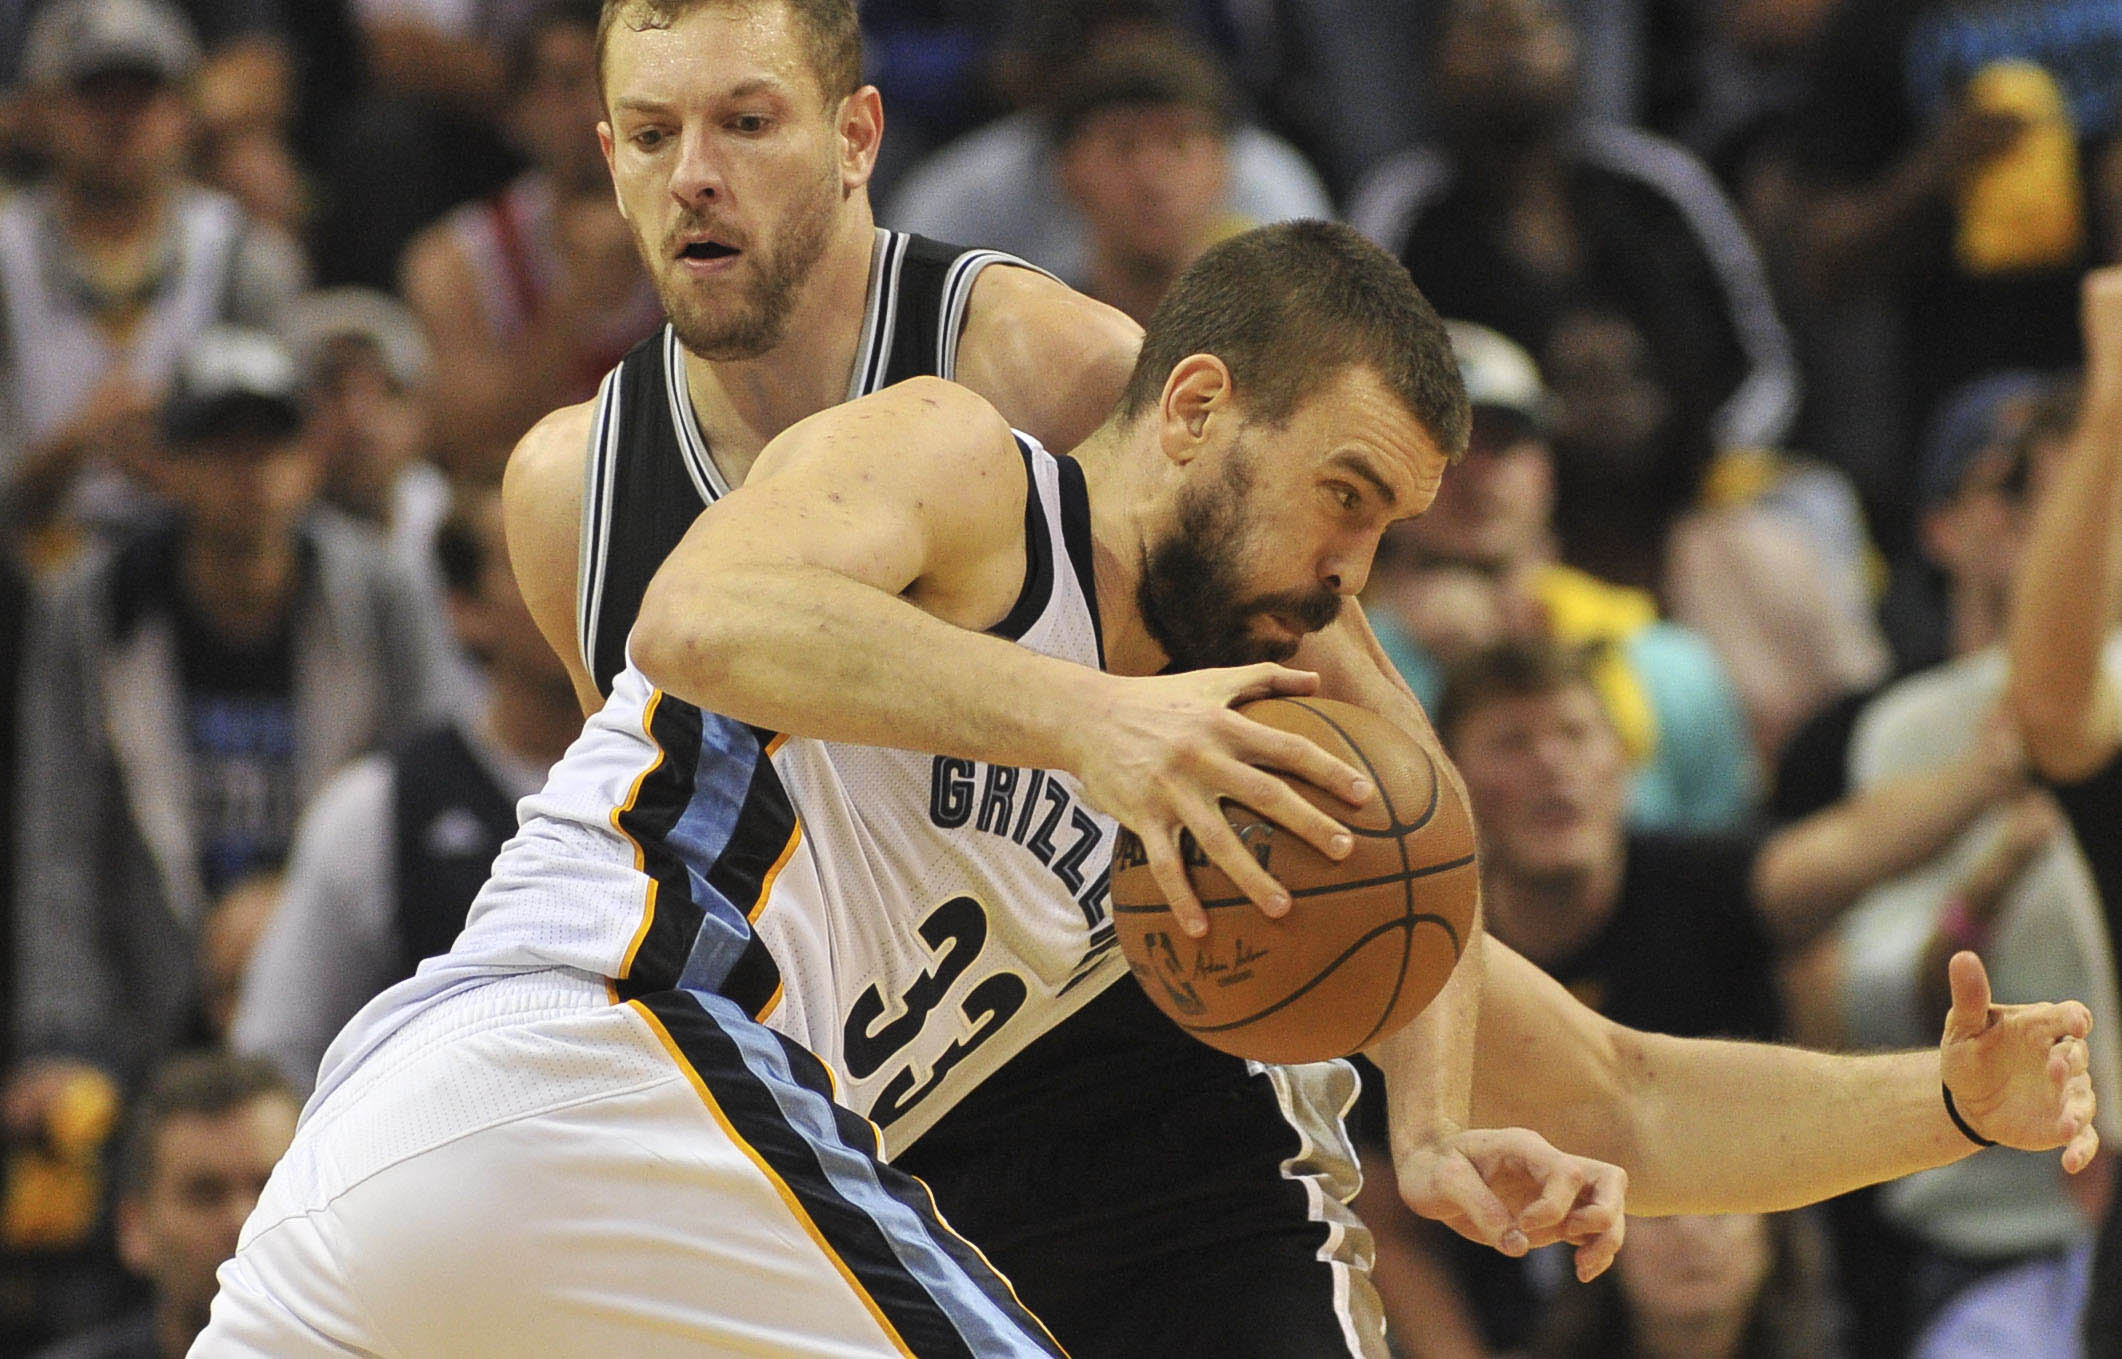 Nashville Sports News Grizzlies 1 Game Behind Going Into Game 6 1